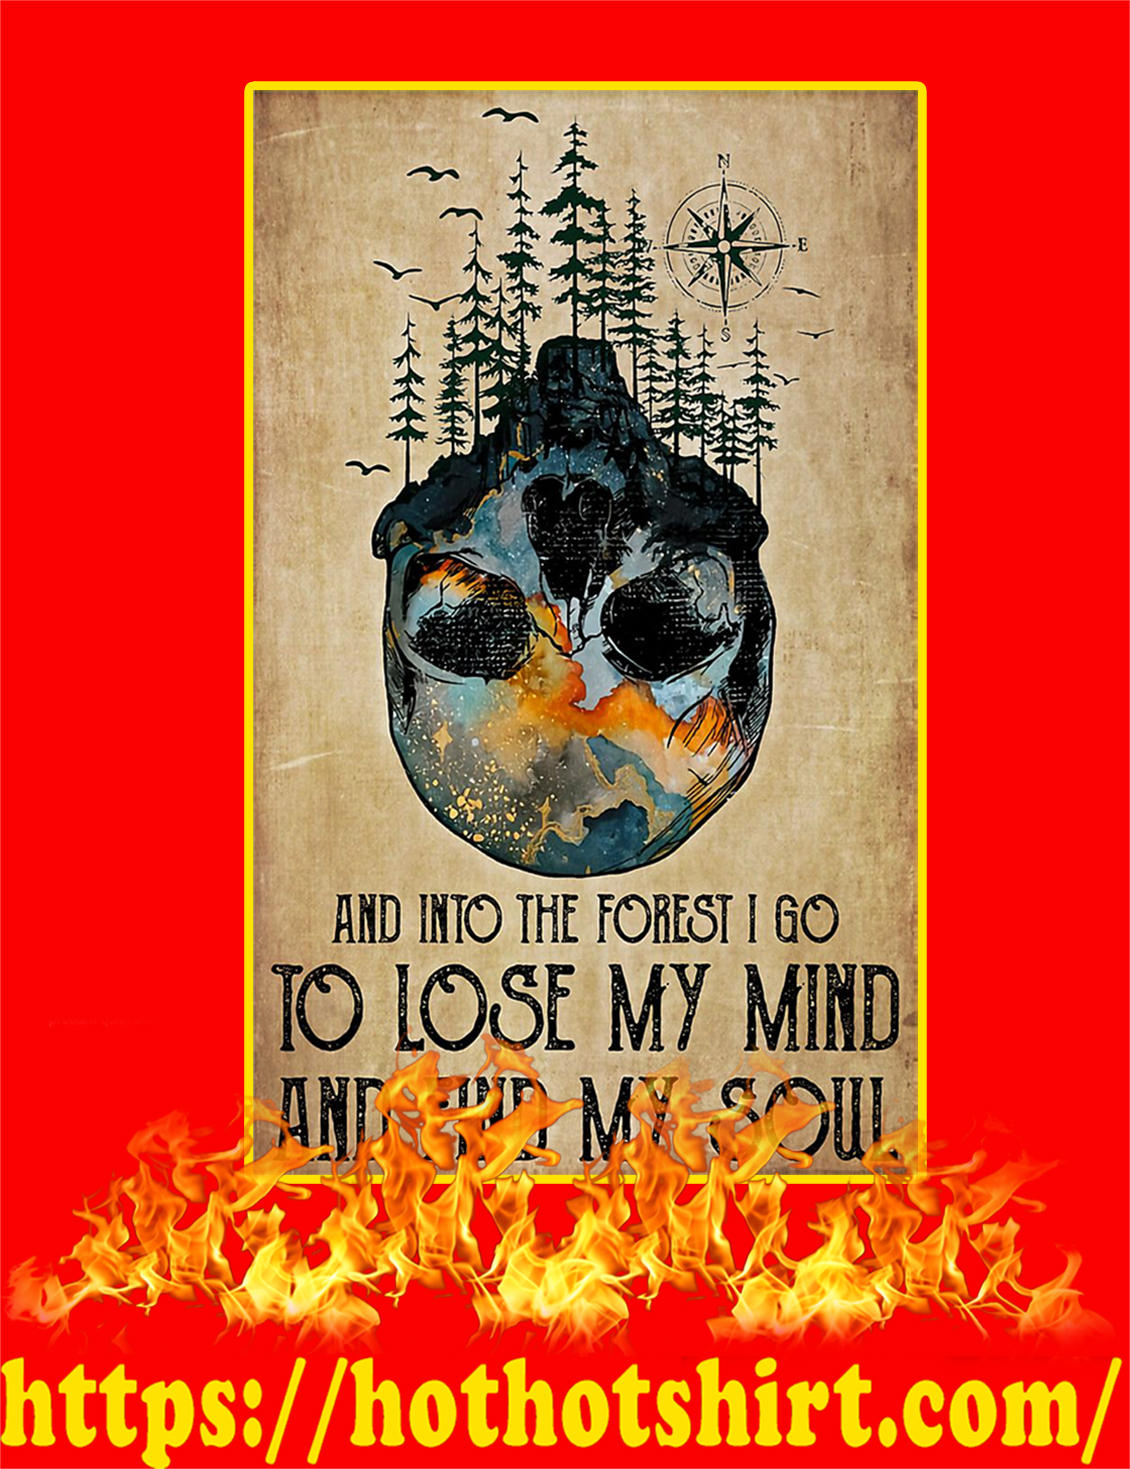 And Into The Forest I Go To Lose My Mind And Find My Soul Poster - A2